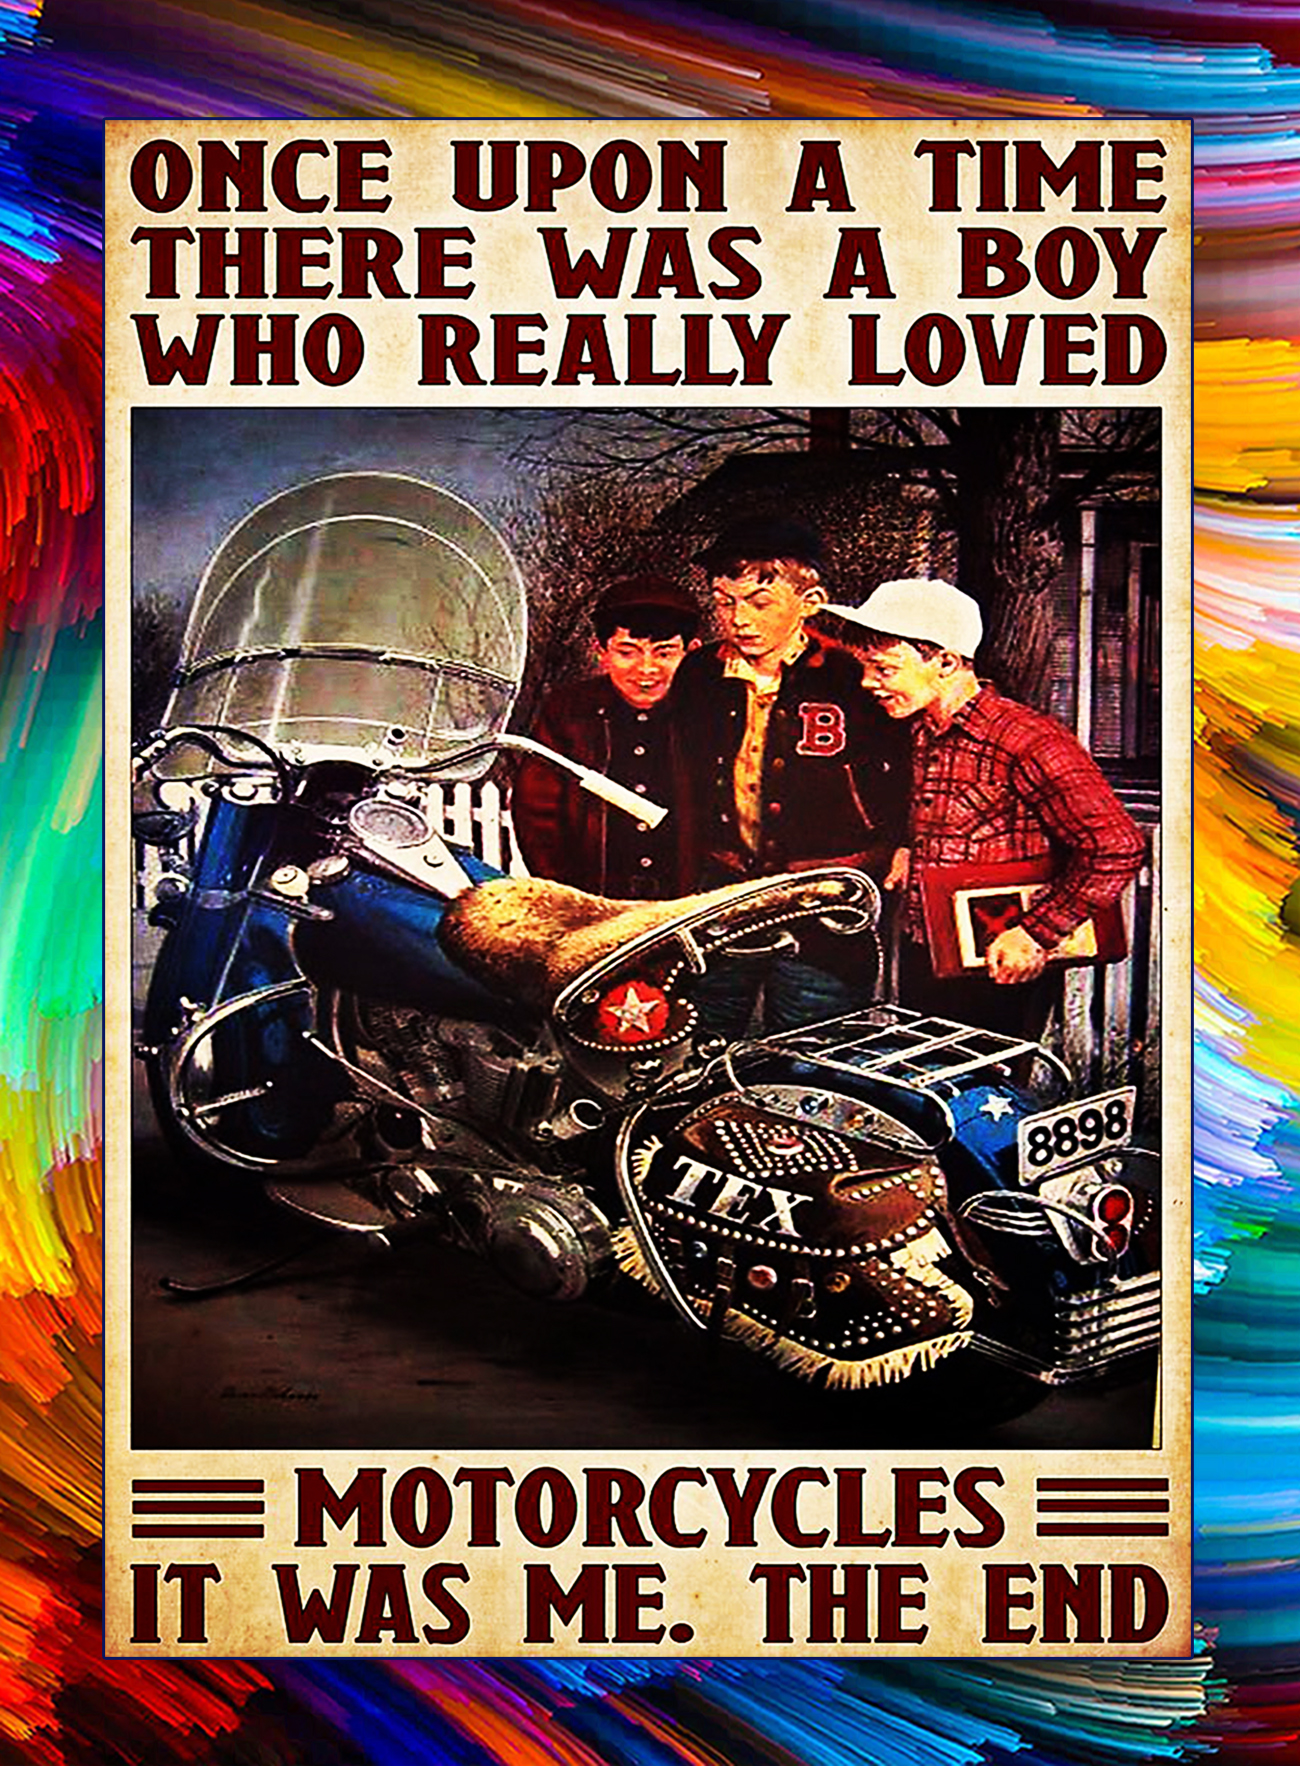 Once upon a time there was a boy who really loved motorcycles poster - A1